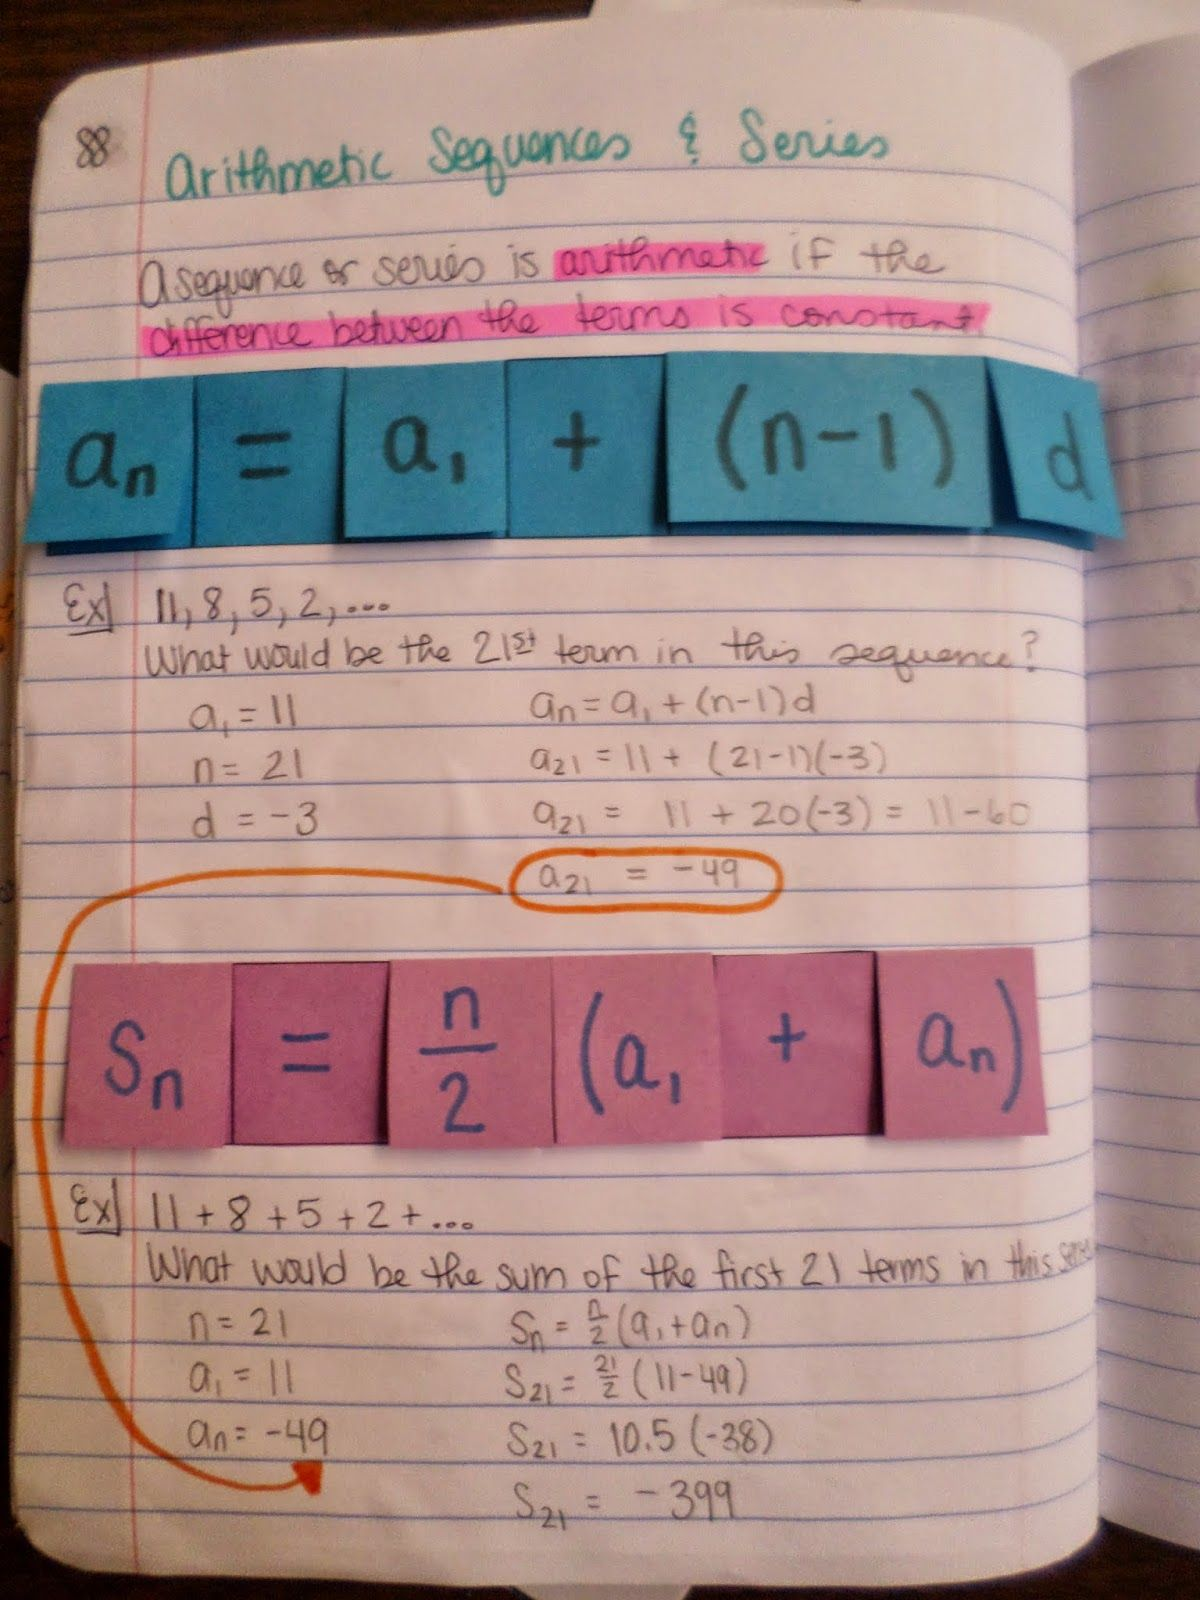 hight resolution of 71 Arithmetic and geometric sequences ideas   geometric sequences